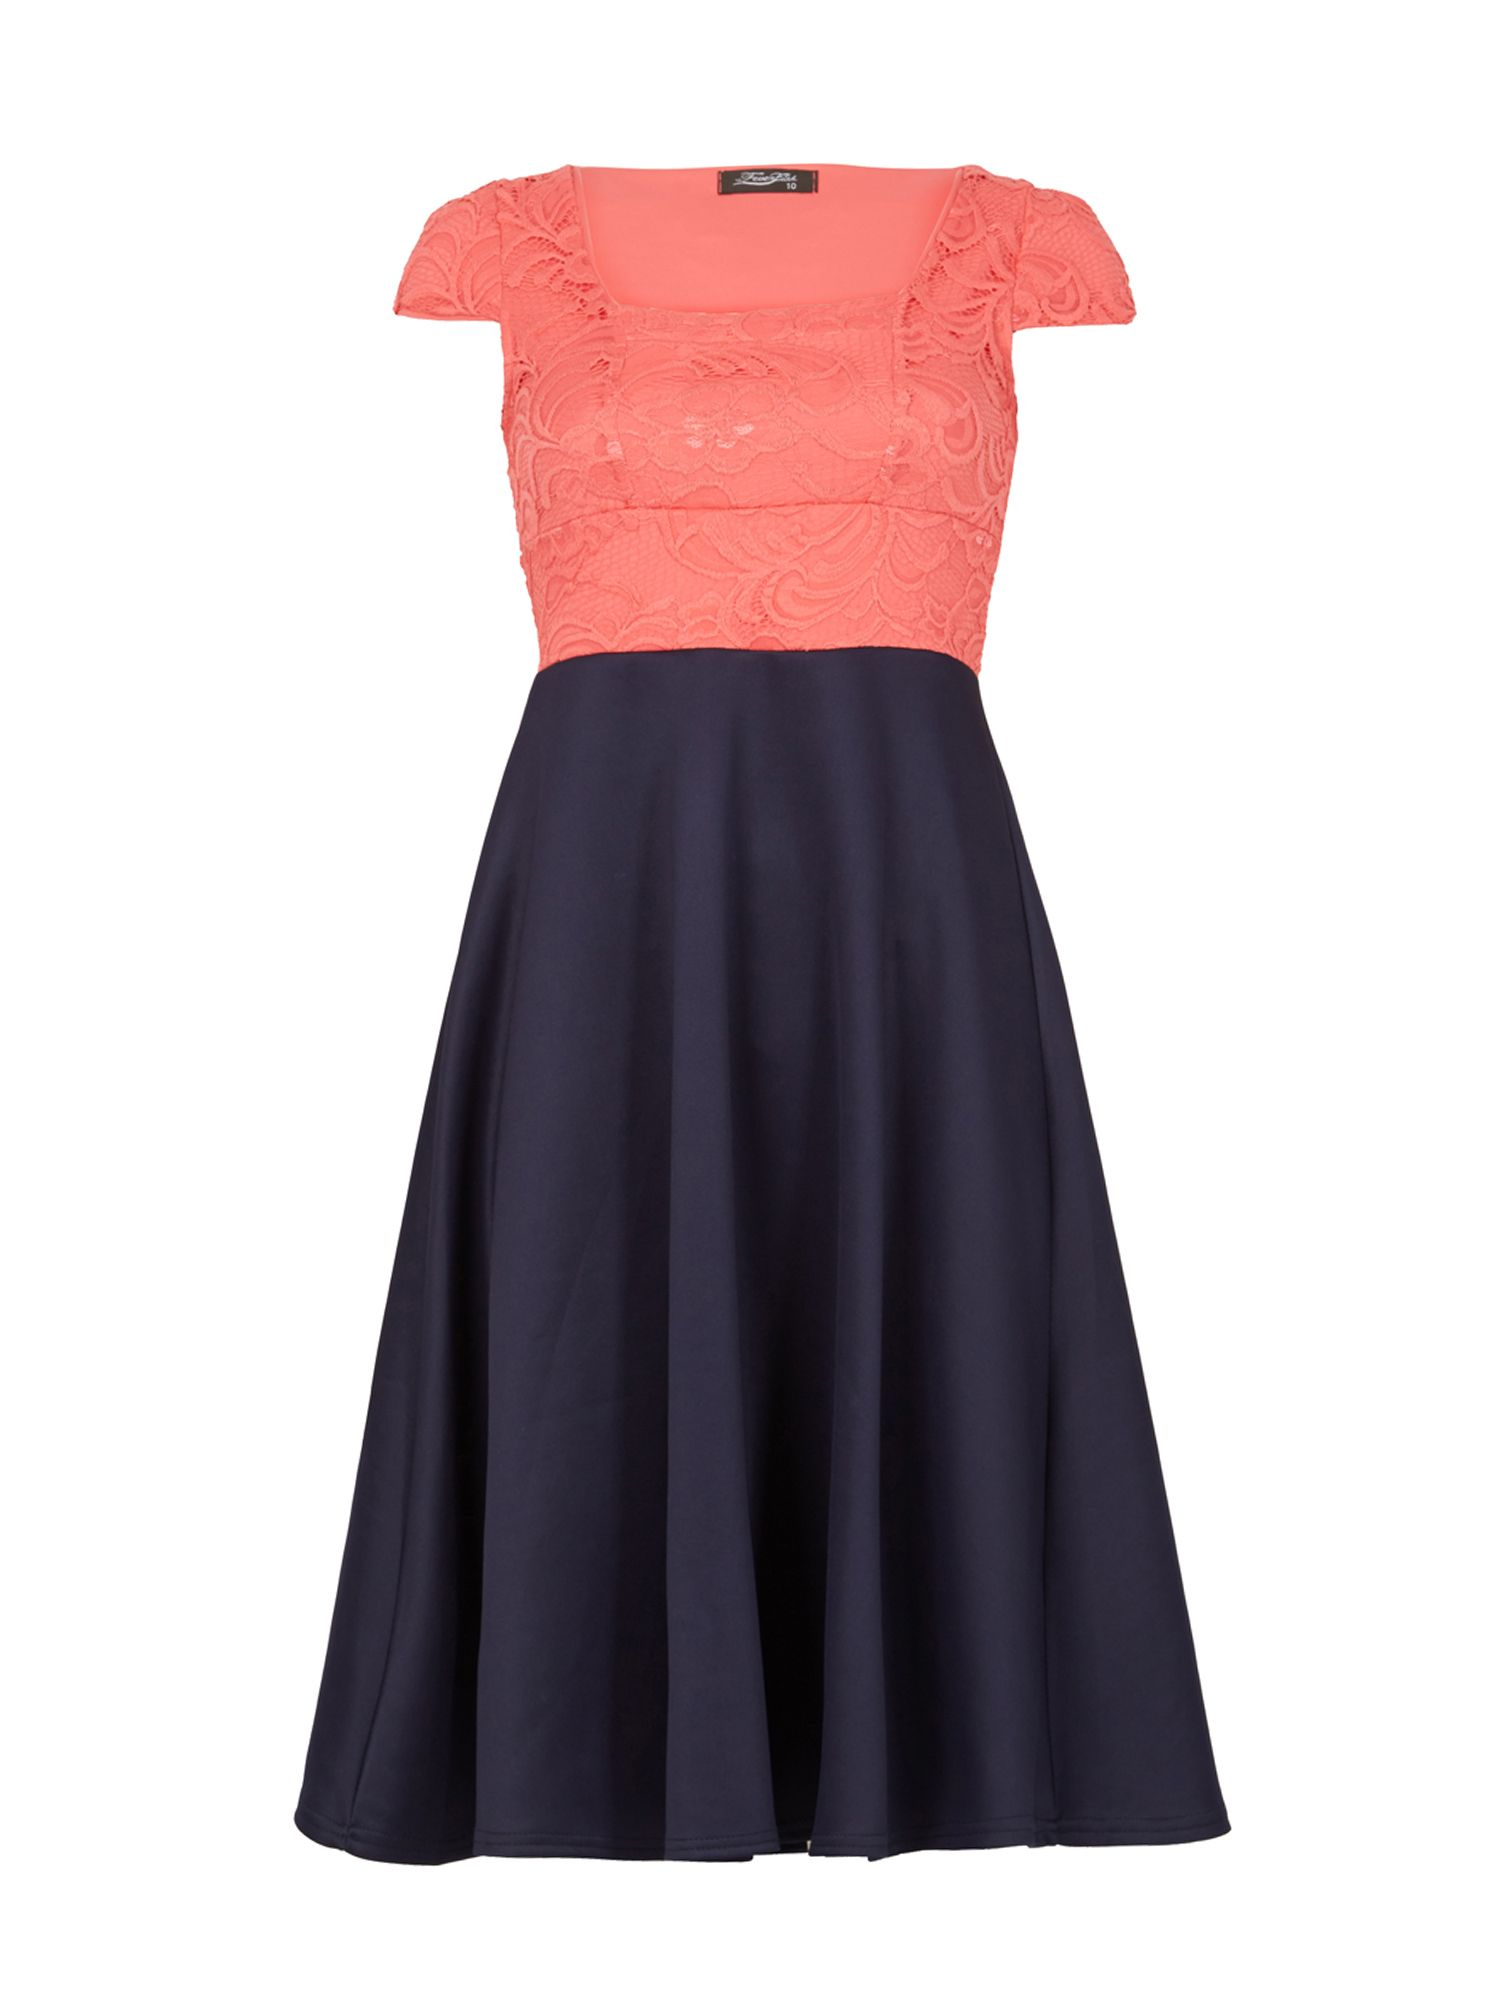 Feverfish Lace Contrast Skater Dress, Blue